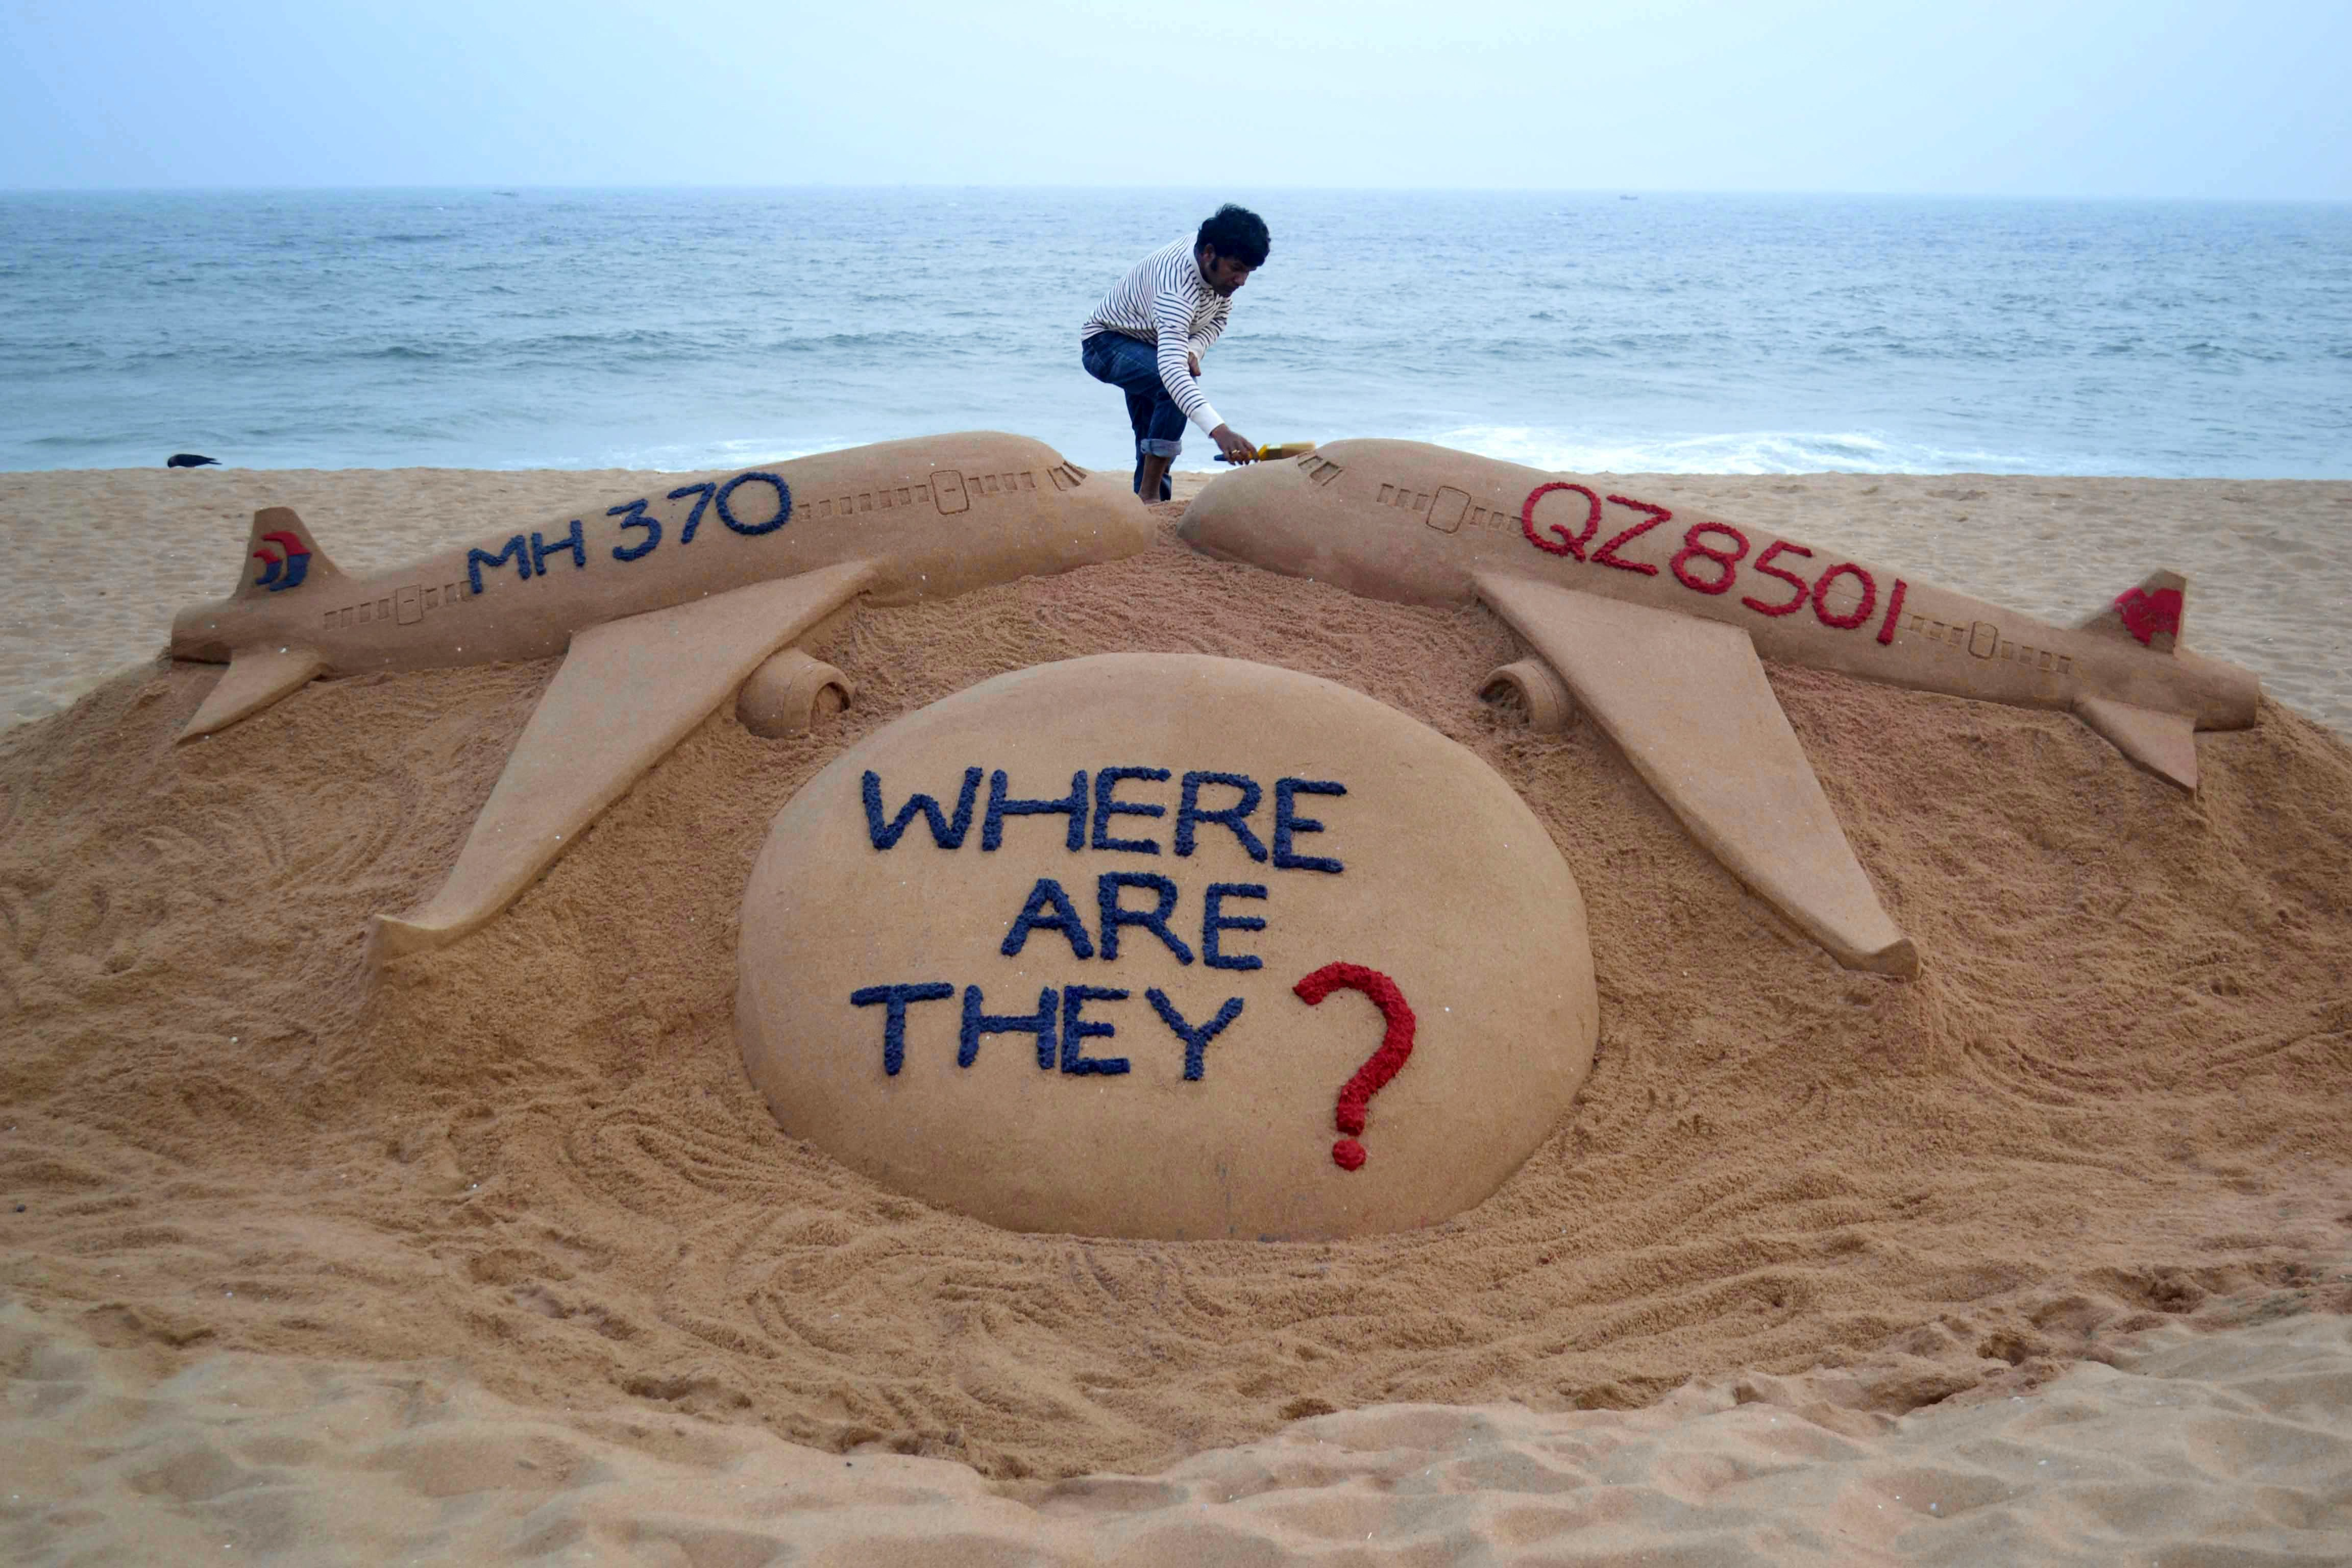 Malaysia Airlines Flight MH370: Not Even a Piece of Debris Has Been Found and it's Been One Year